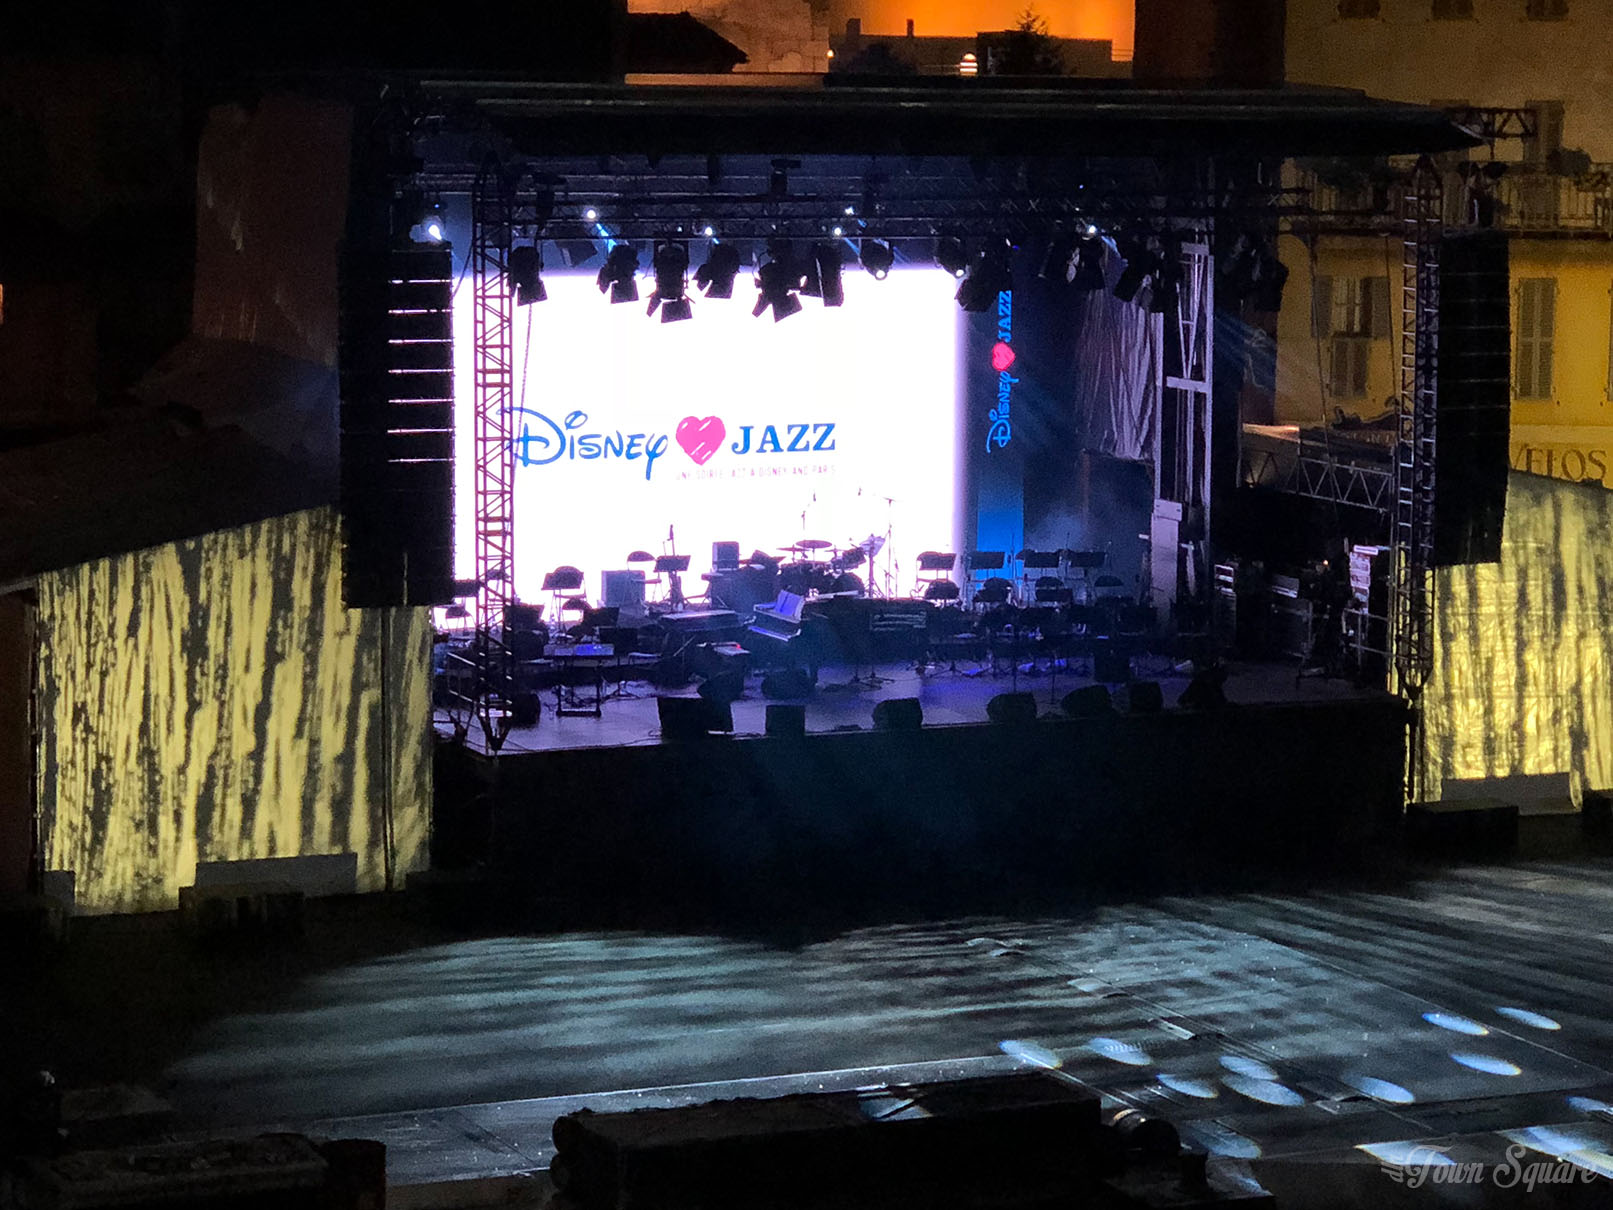 Disney Loves Jazz - Disneyland Paris concert